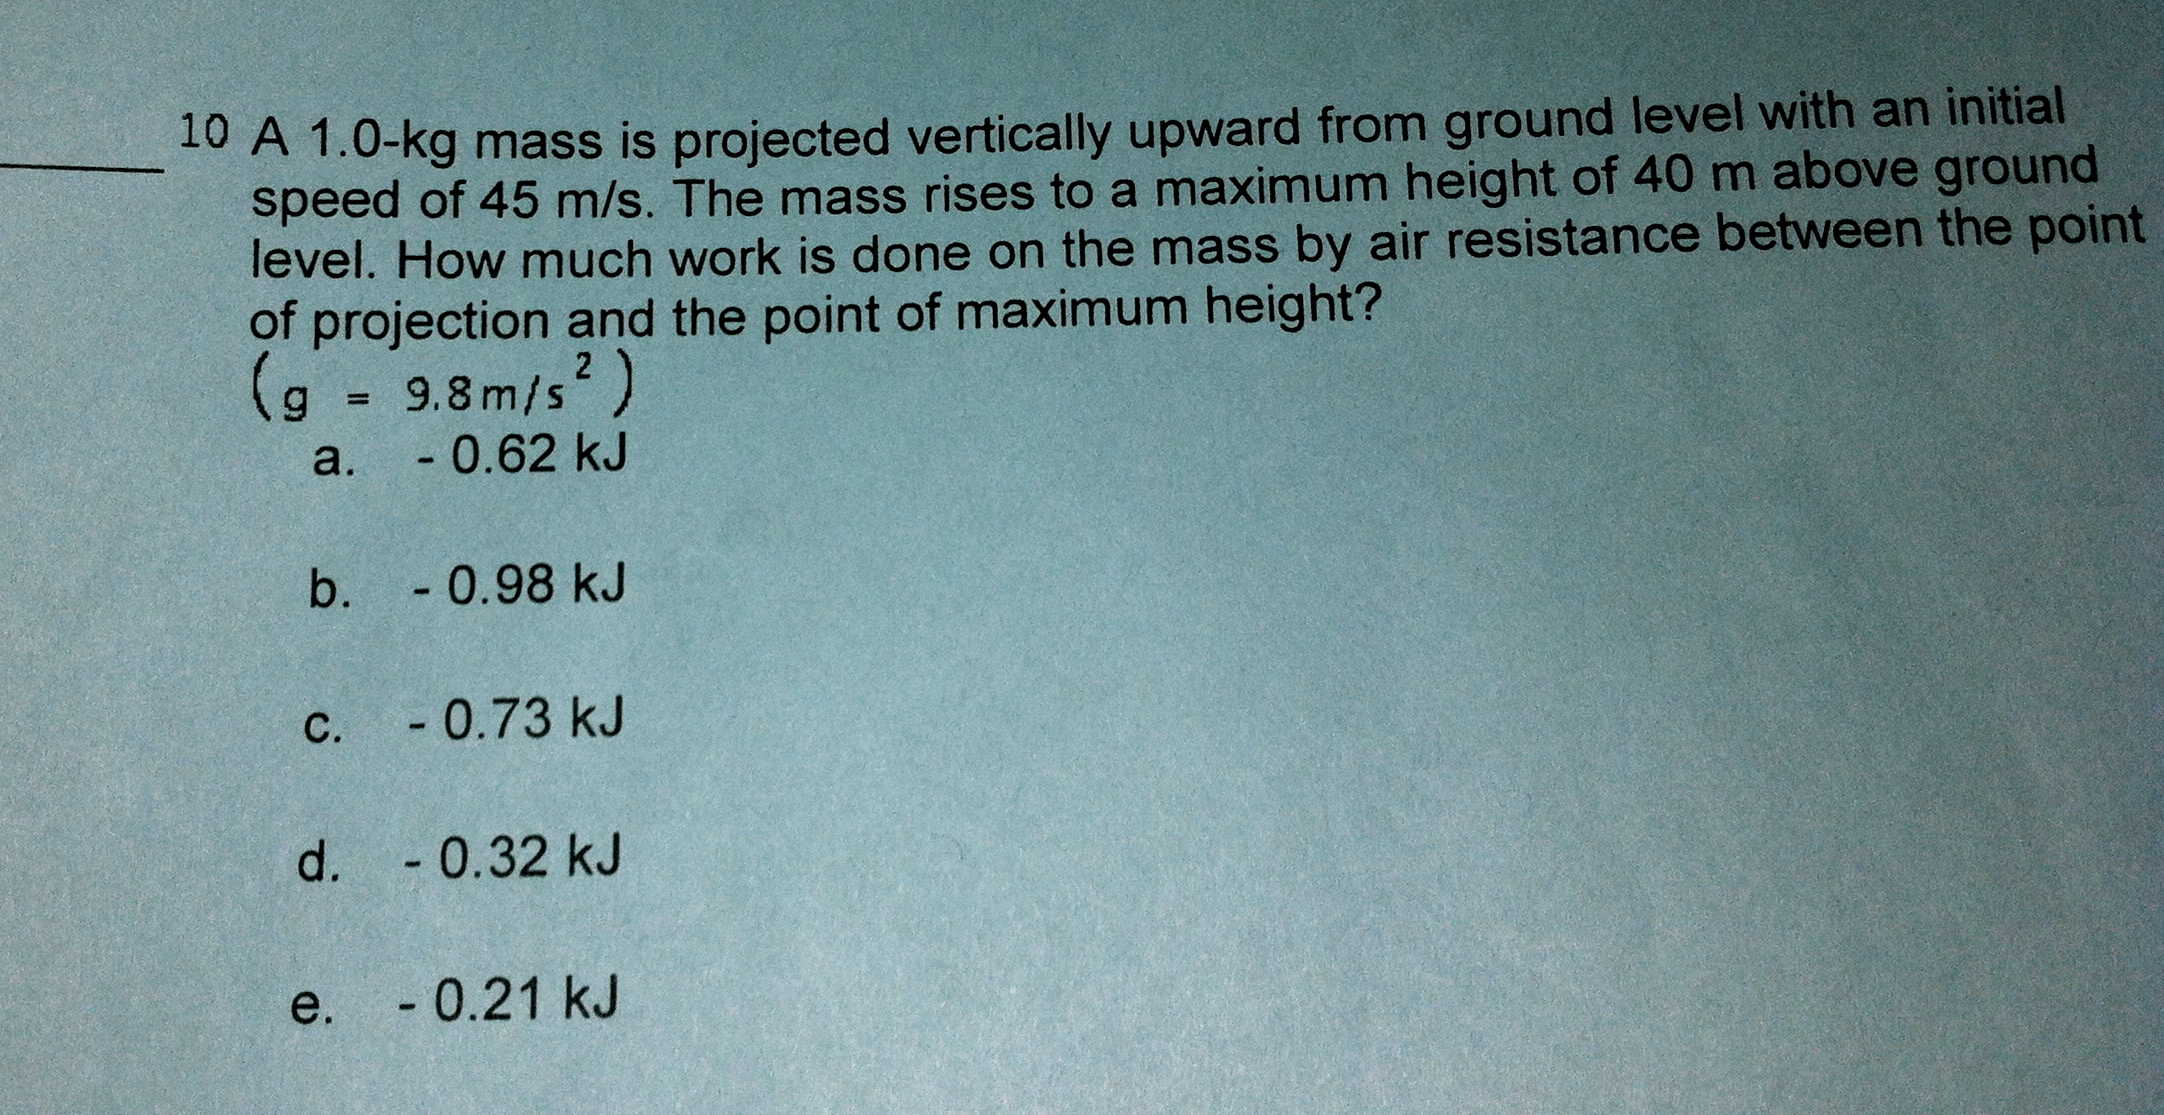 A 1.0-kg mass is projected vertically upward from